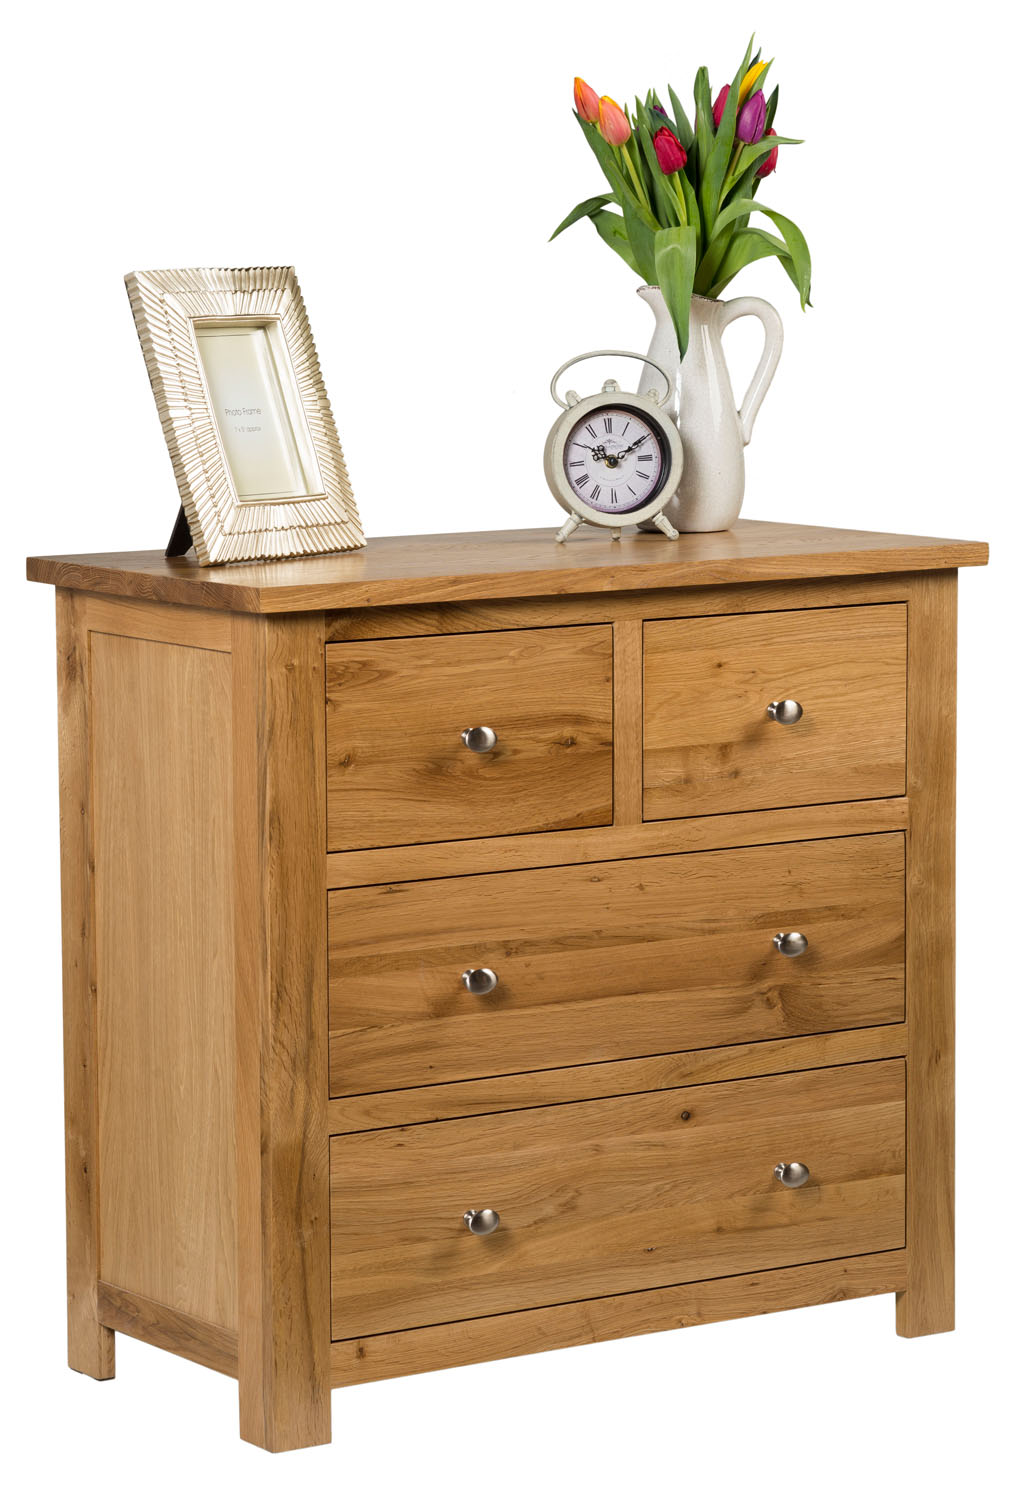 Small Oak Chest Of Drawers Solid Wood Low Childrens Kids Bedroom Furniture Ebay